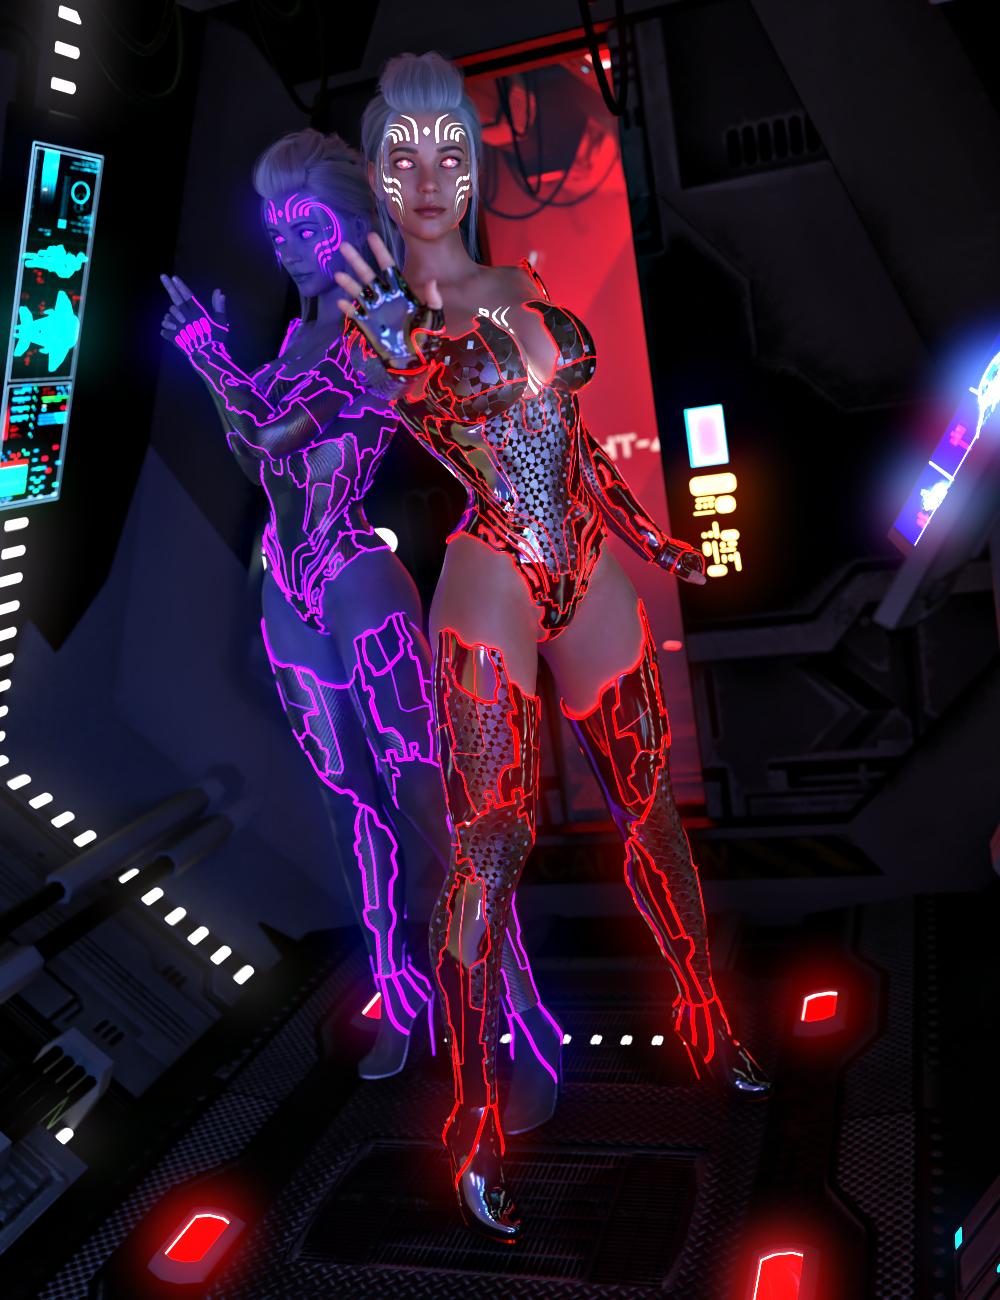 Electrified for CyberPunk Unlimited Outfit by: Vex, 3D Models by Daz 3D